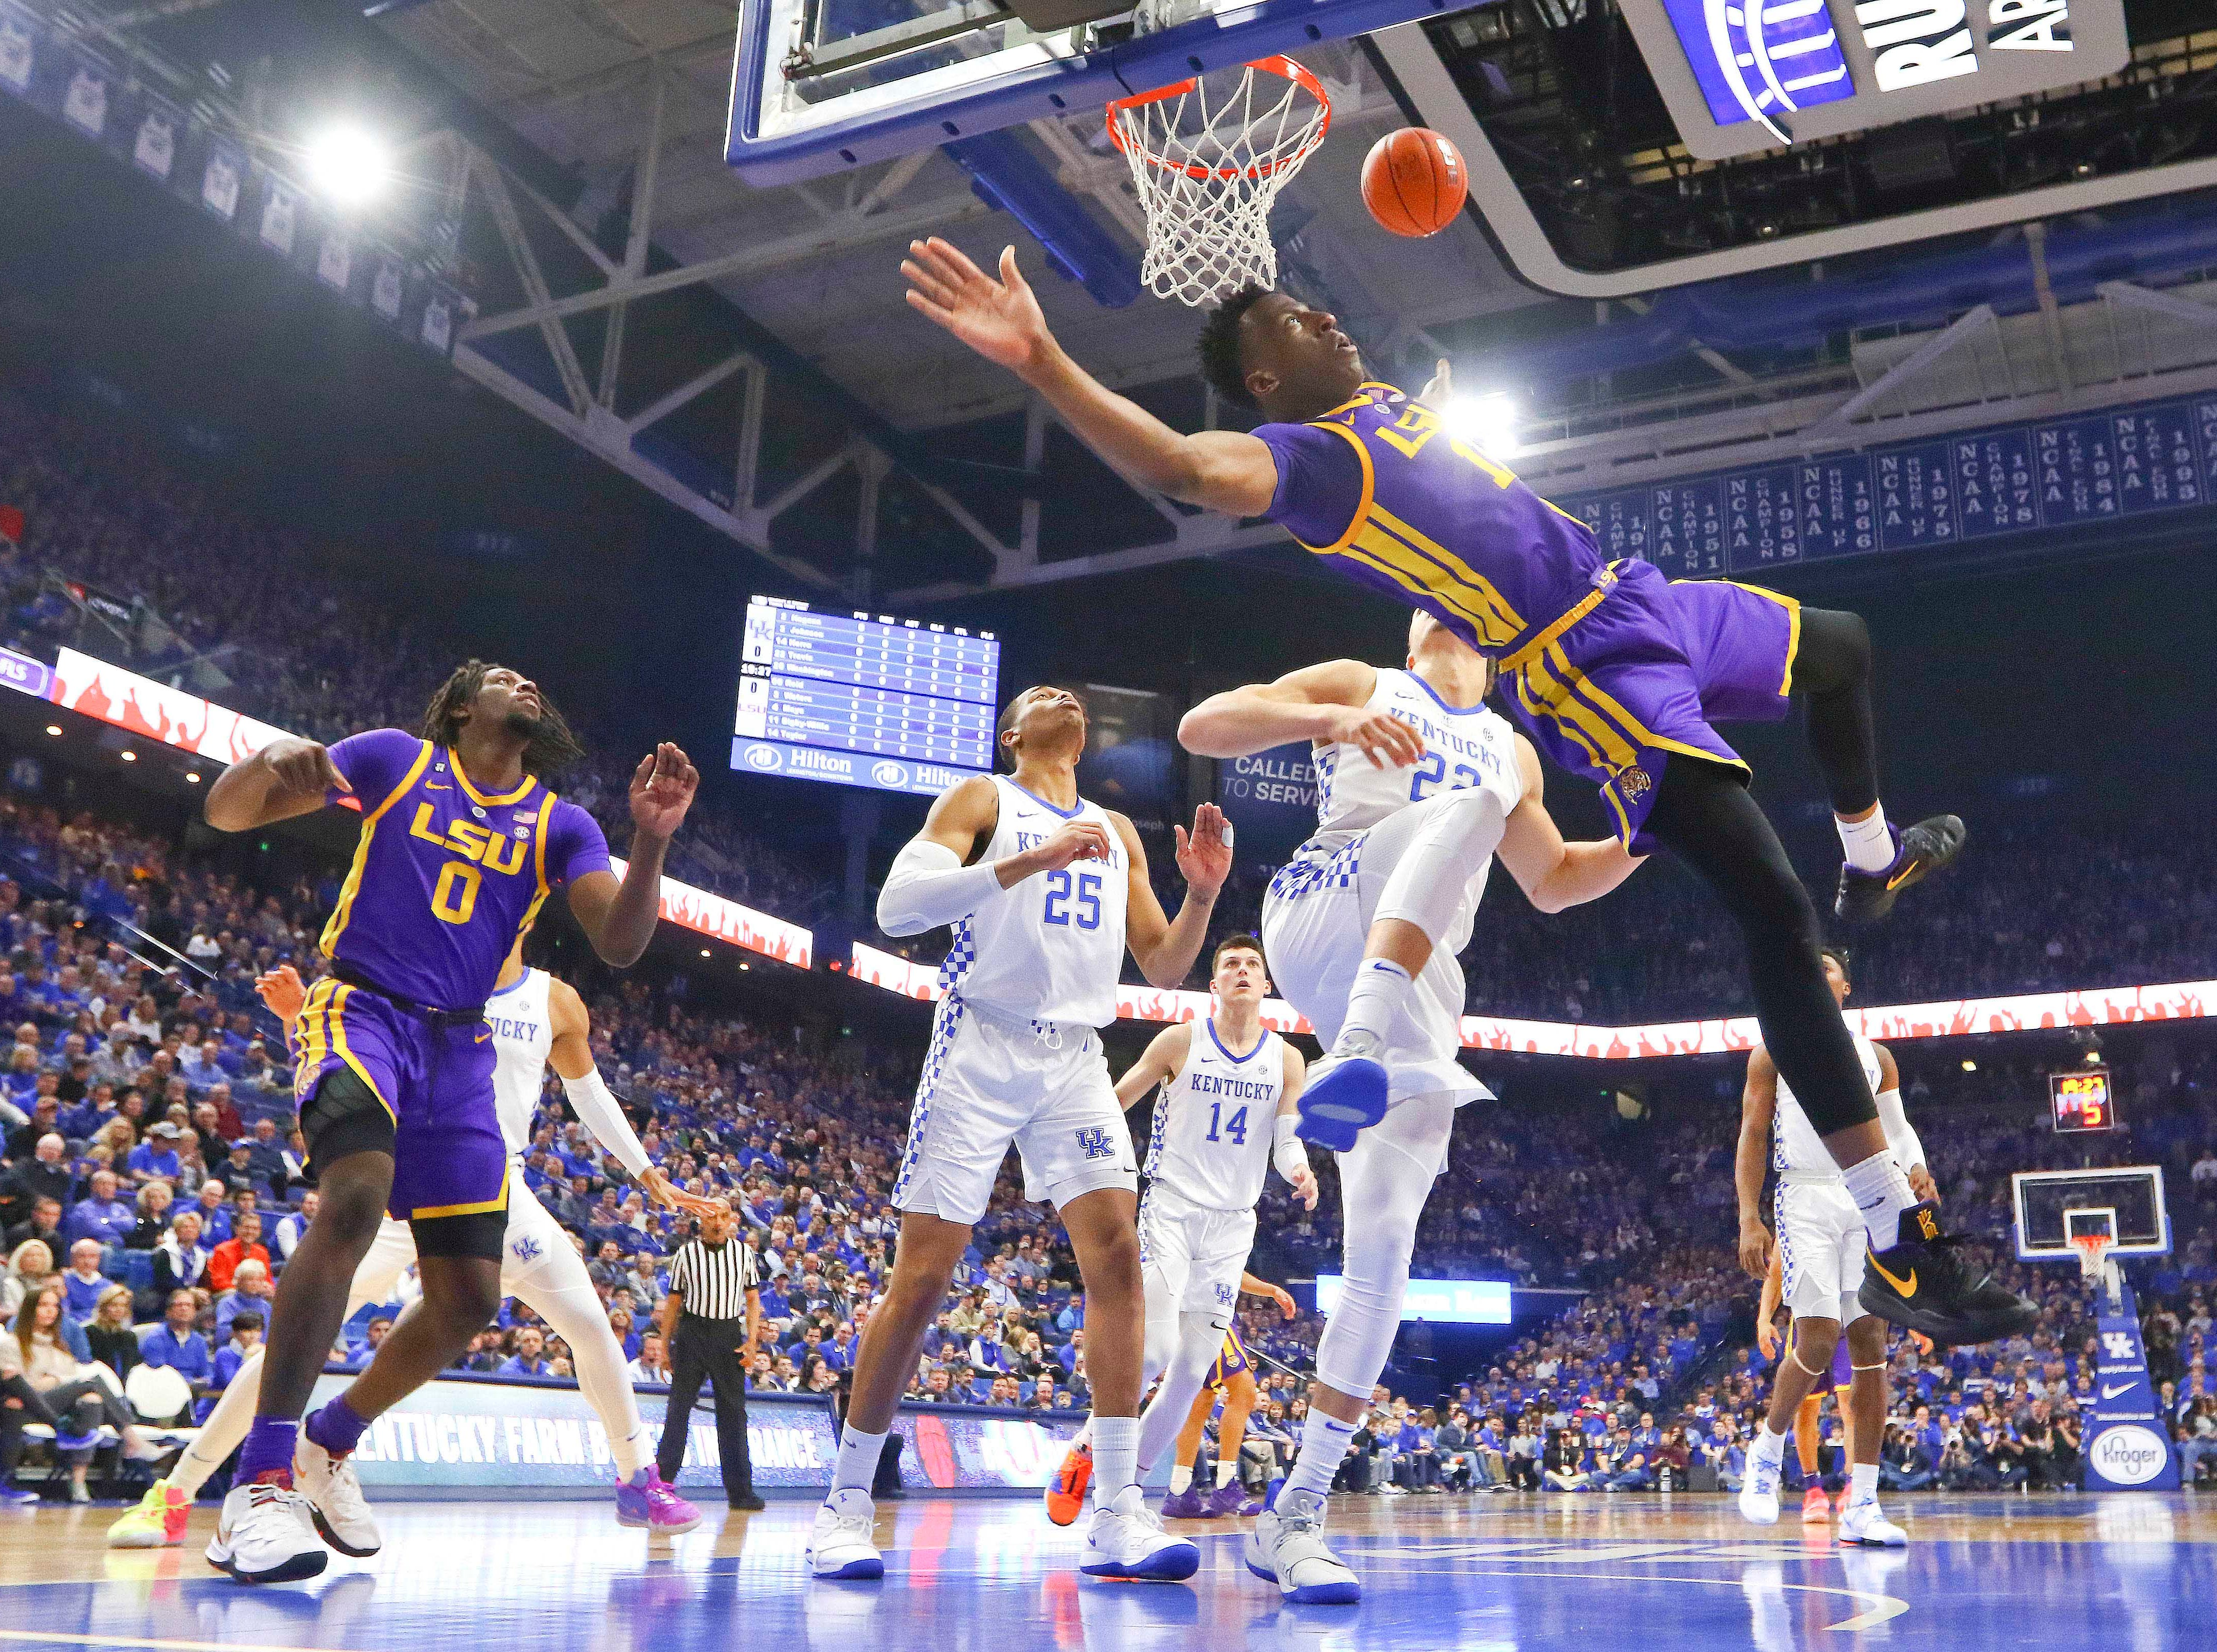 Feb 12, 2019; Lexington, KY, USA; LSU Tigers guard Ja'vonte Smart (1) is fouled by Kentucky Wildcats forward Reid Travis (22) in the first half at Rupp Arena. Mandatory Credit: Mark Zerof-USA TODAY Sports